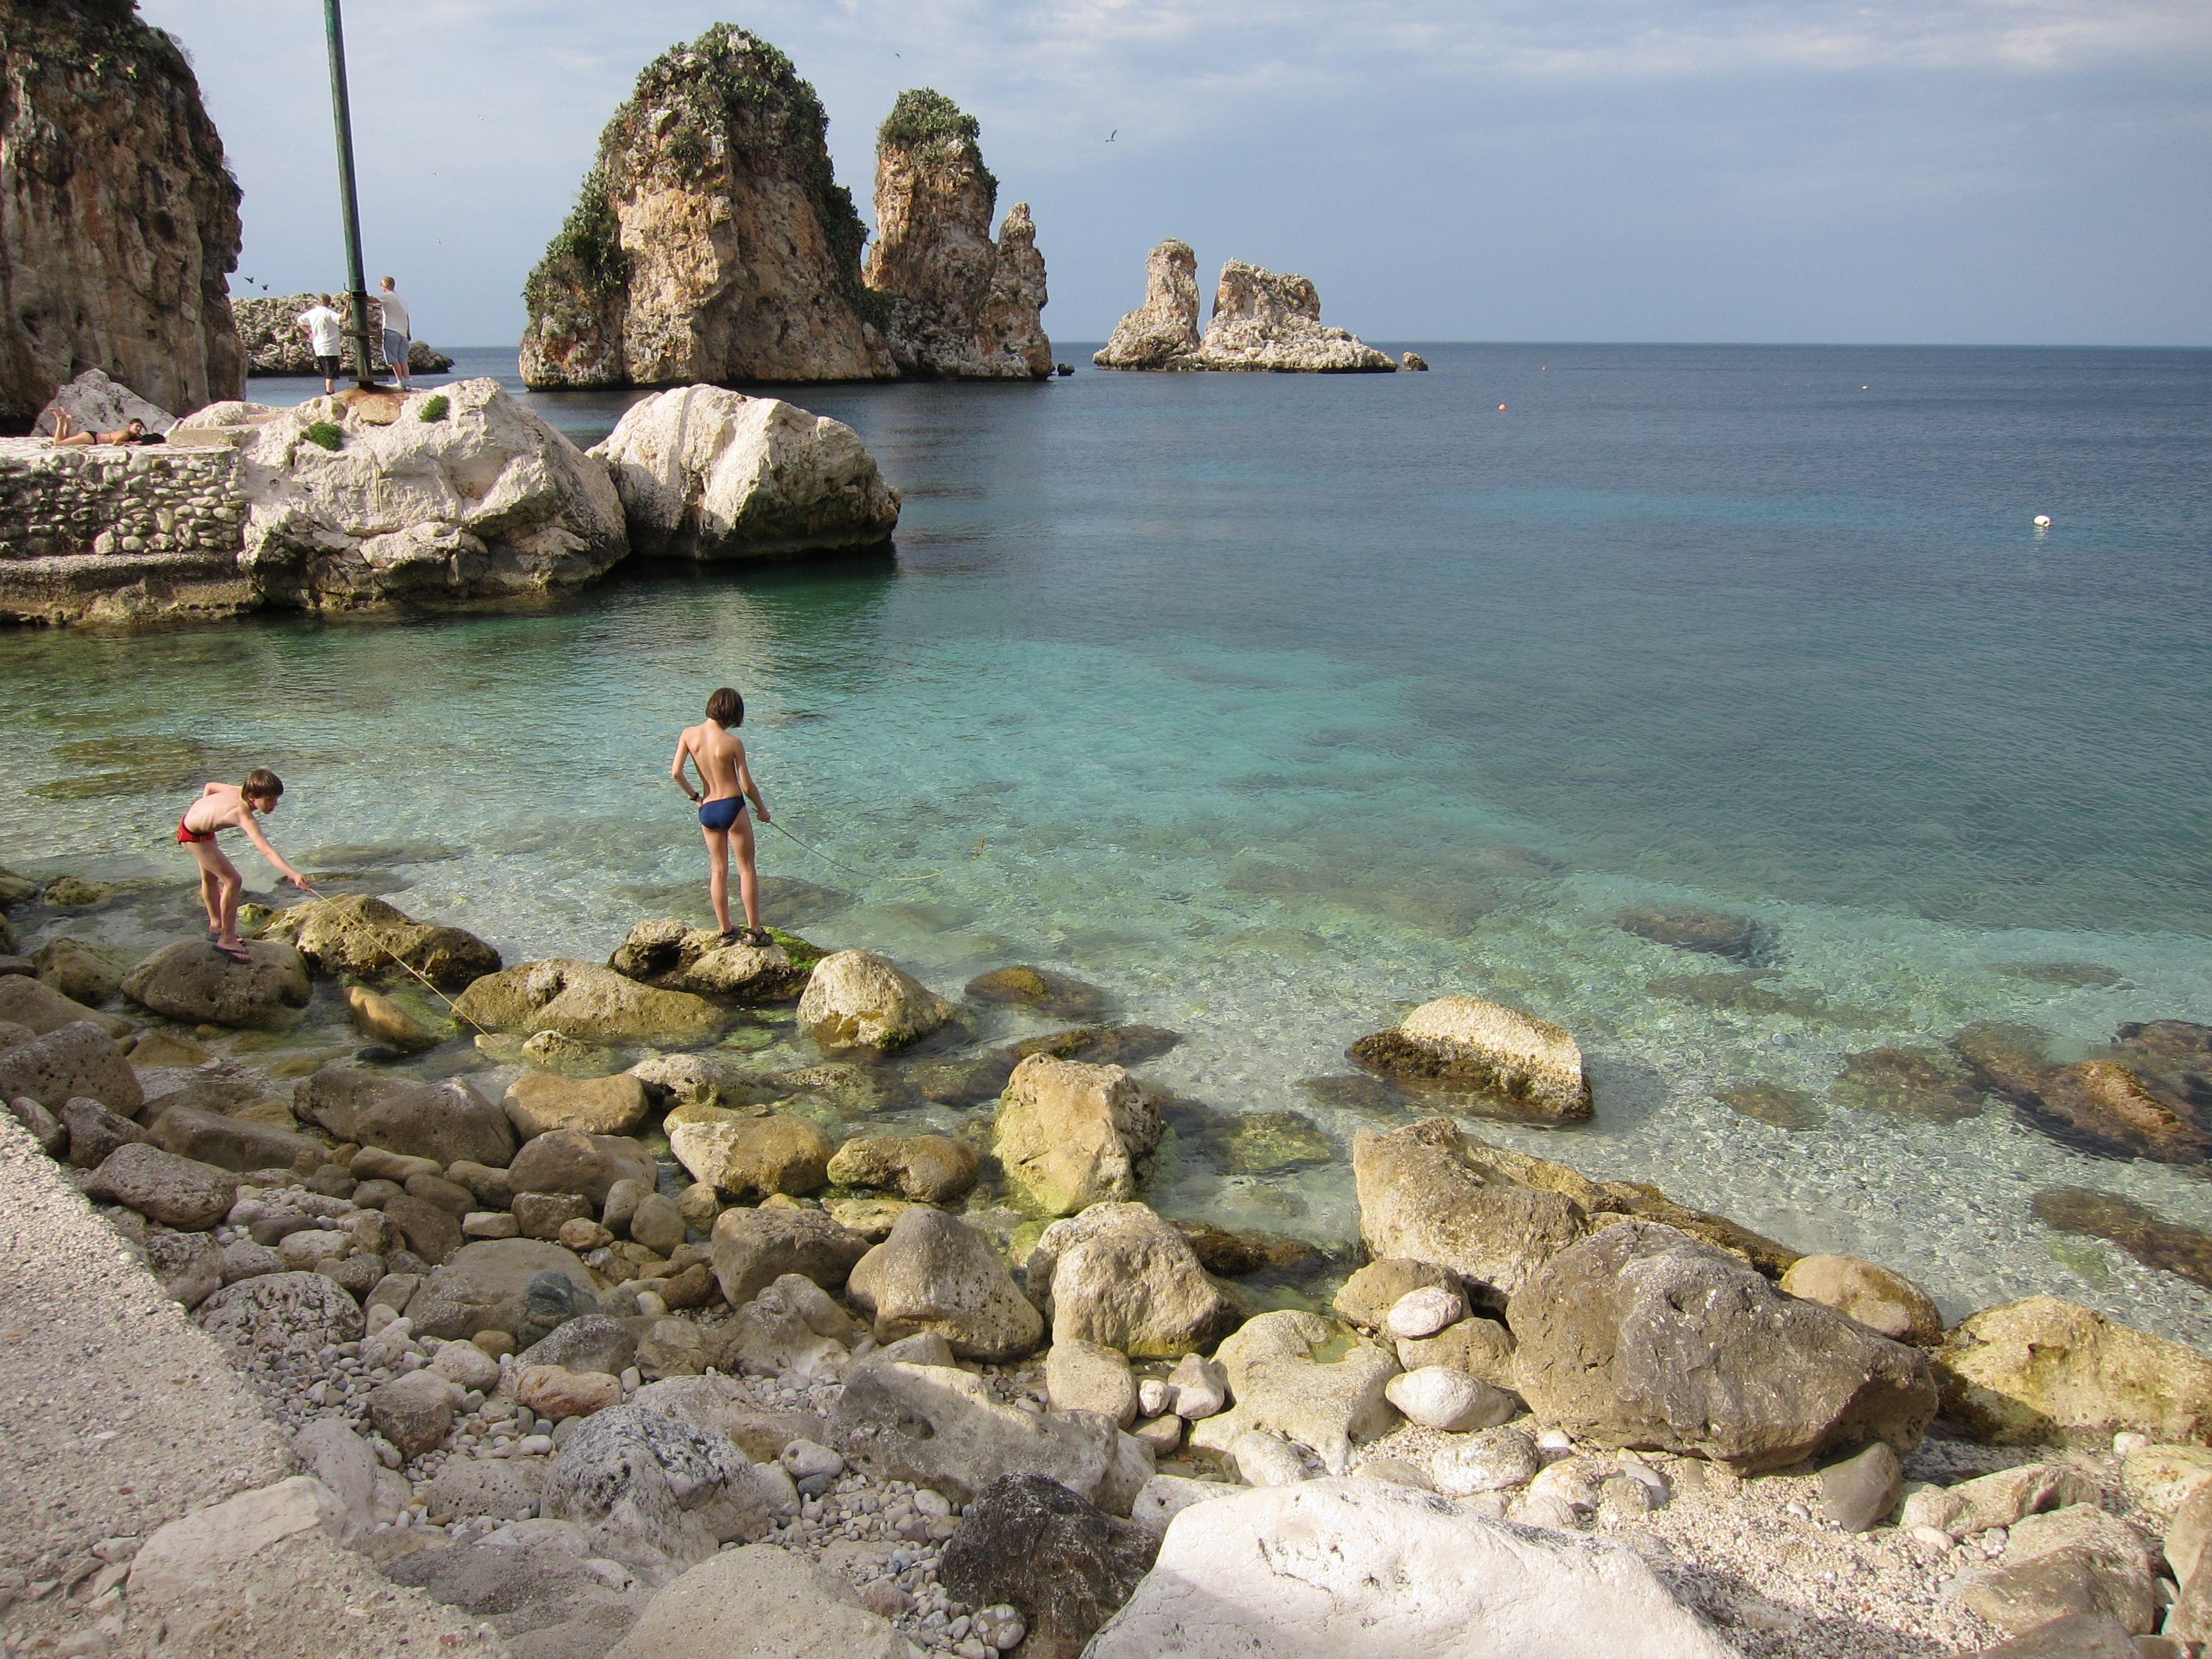 #Sicily! My favorite island.. Just gorgeous.